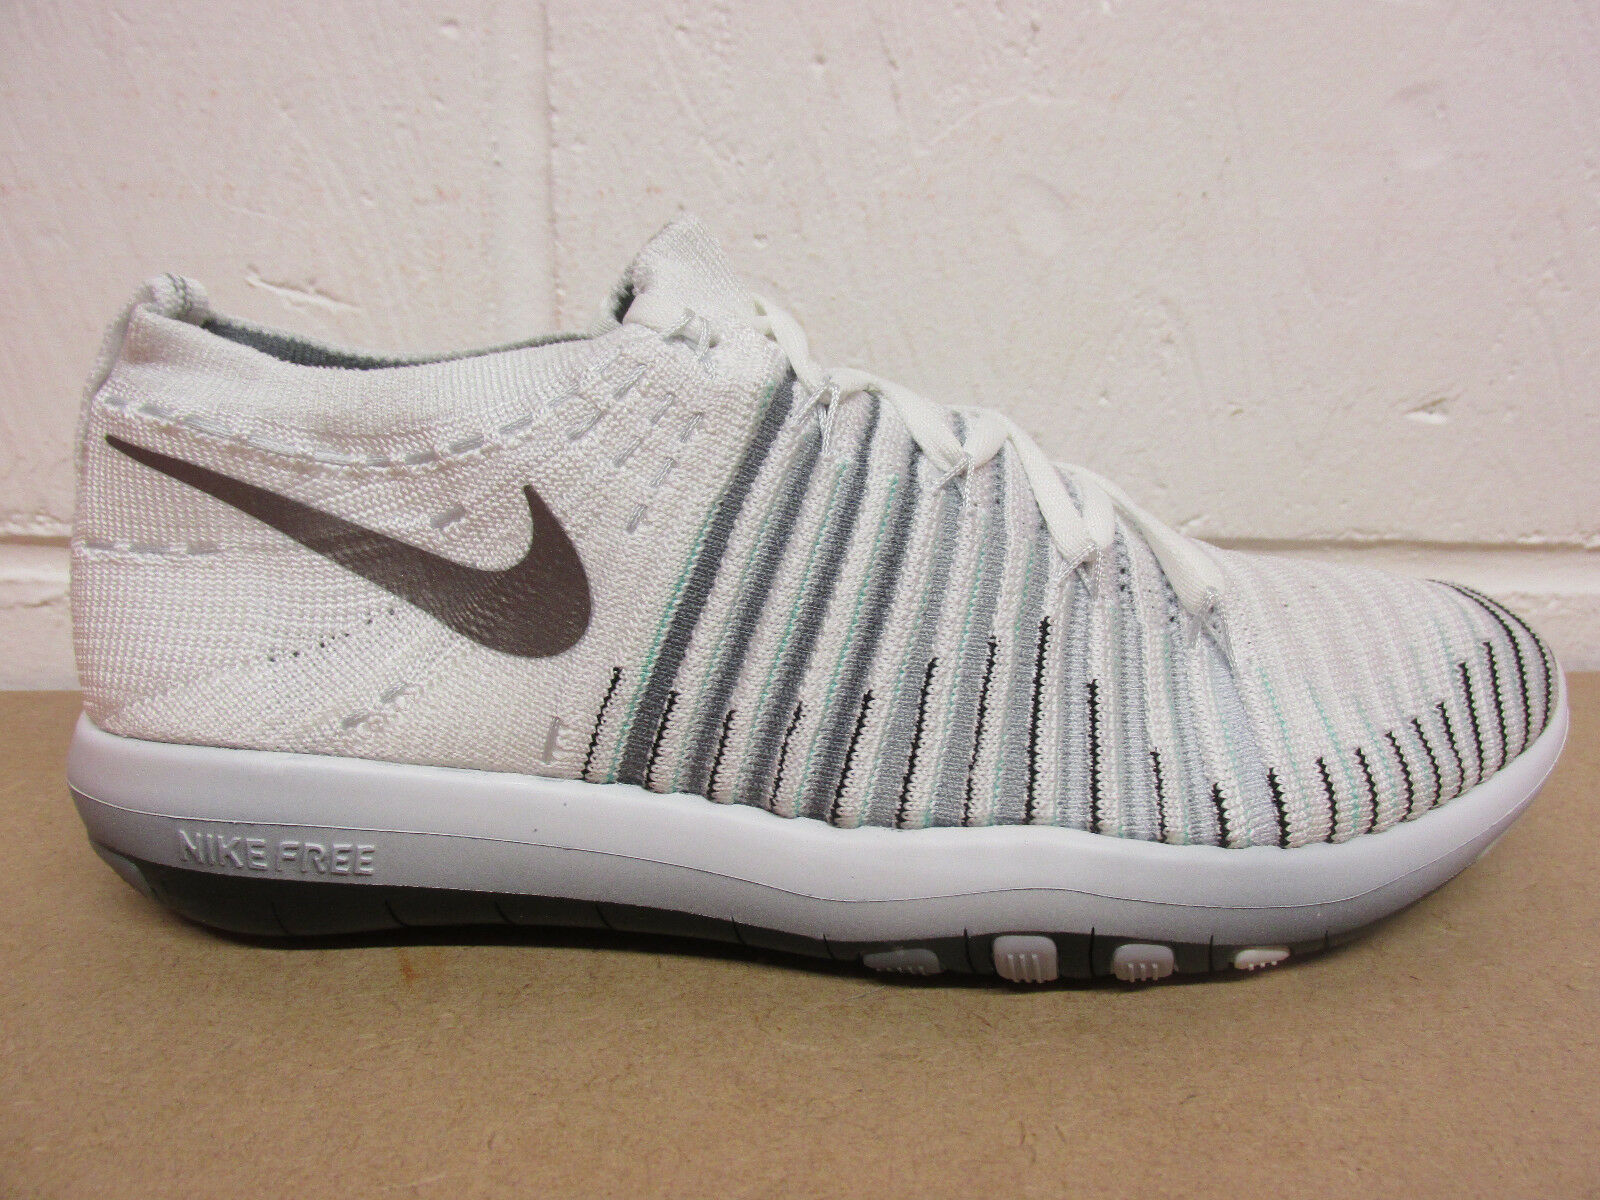 Nike Free Transform Flyknit Femme Chaussures Running Baskets 833410 101 Baskets Chaussures Femme 0d0f53